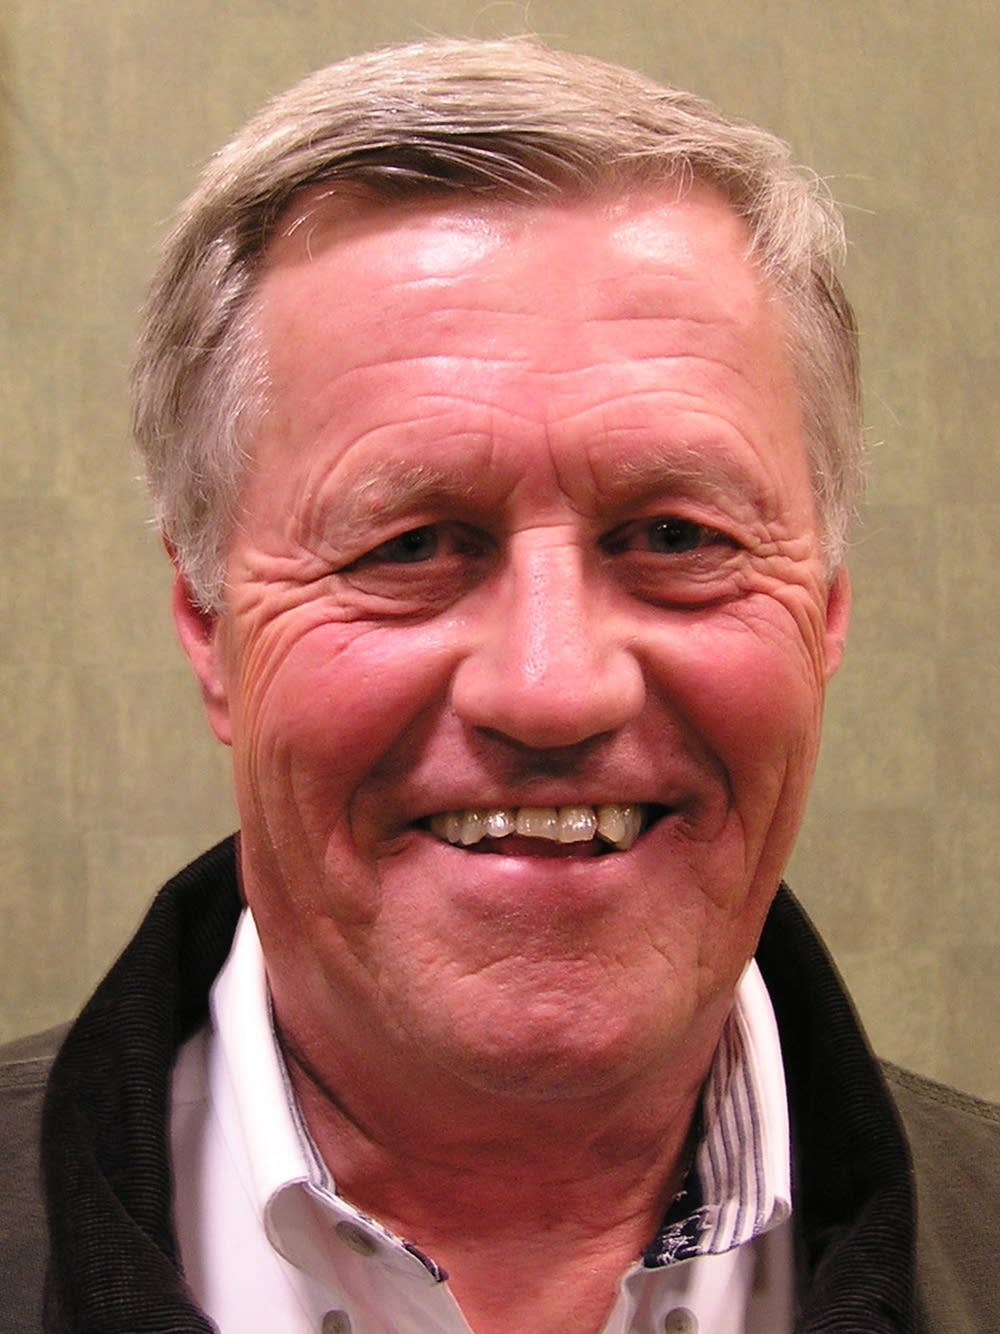 U.S. Rep. Collin Peterson